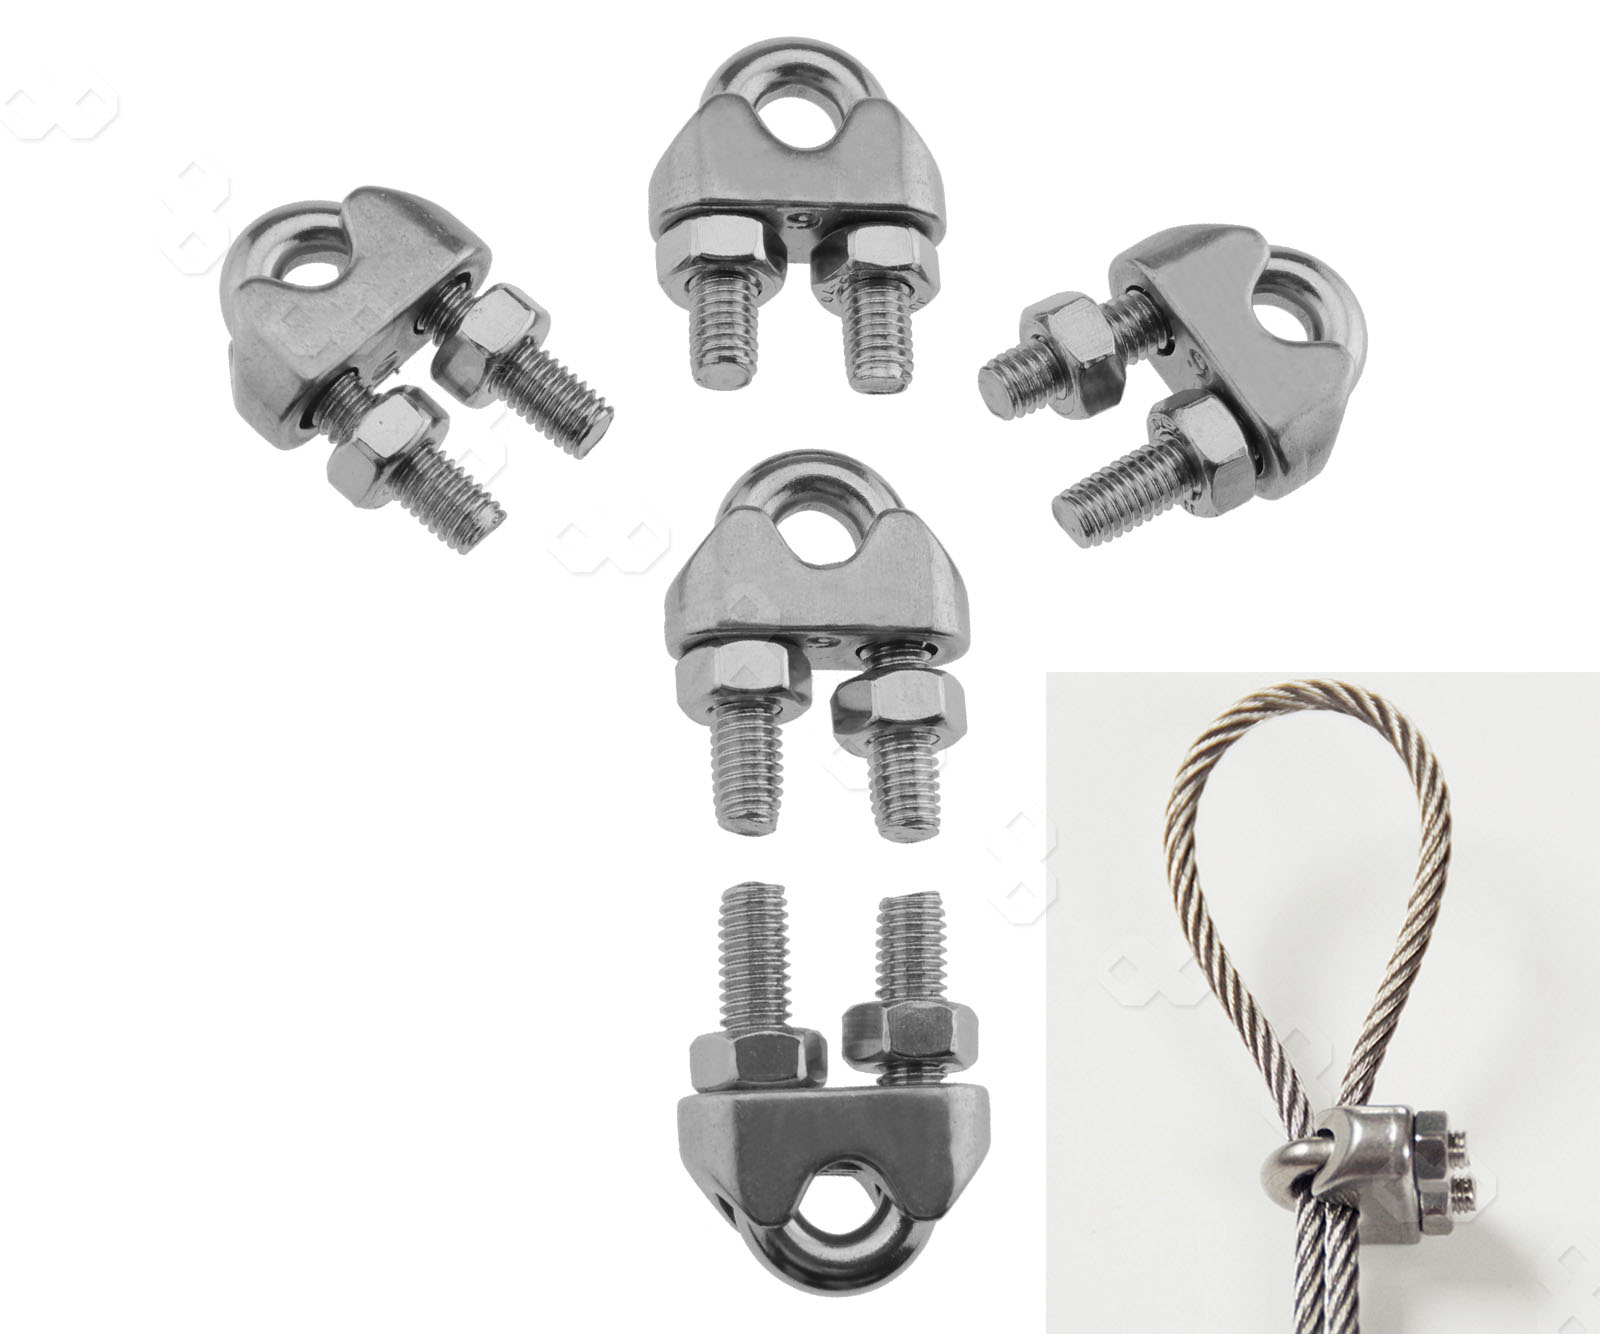 12mm Diameter 304 Stainless Steel Wire Rope Cable Clip Clamping Ring Accessories